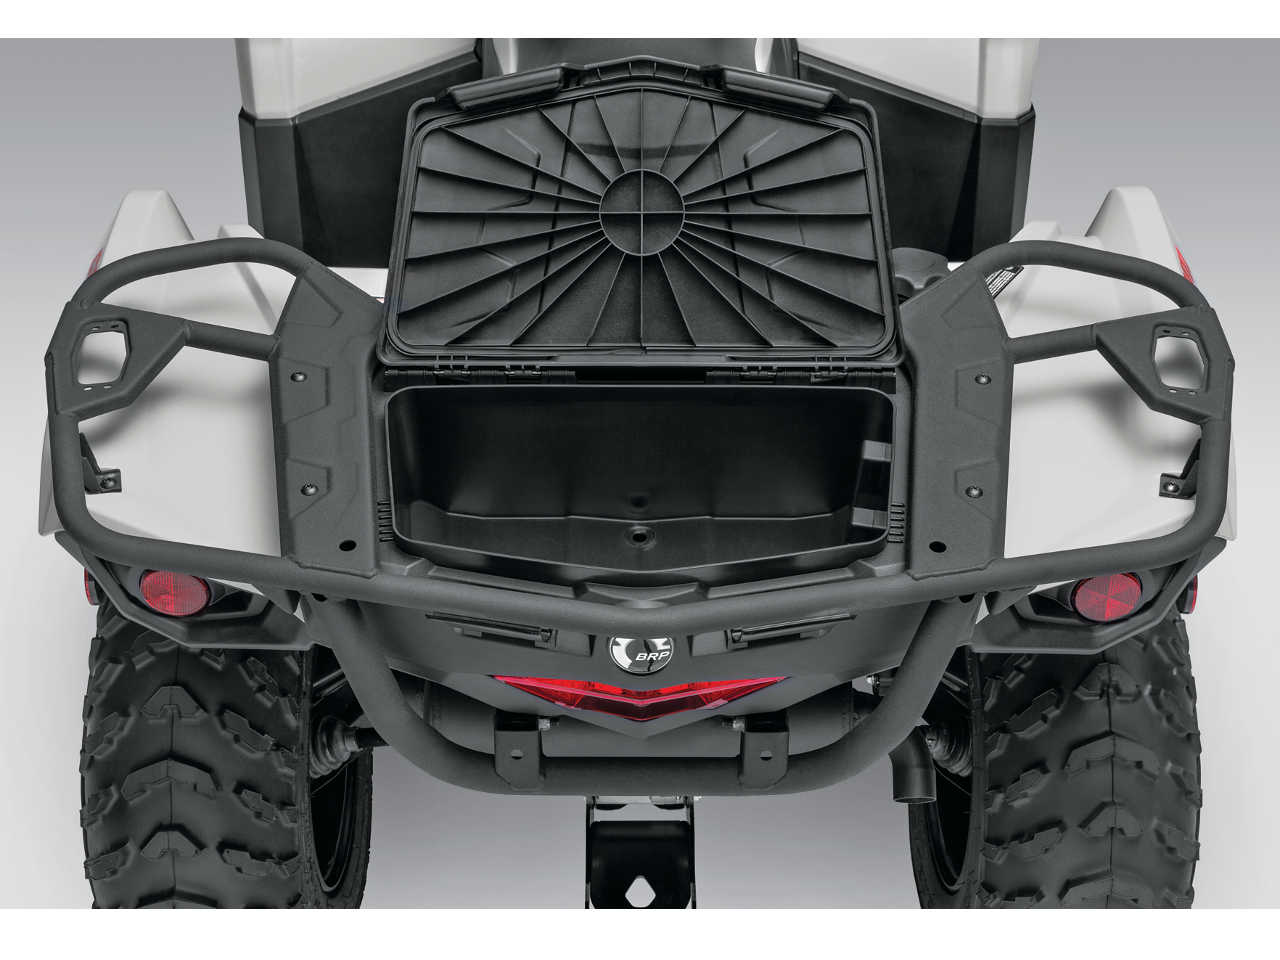 New Model Preview Value Package Atv Illustrated